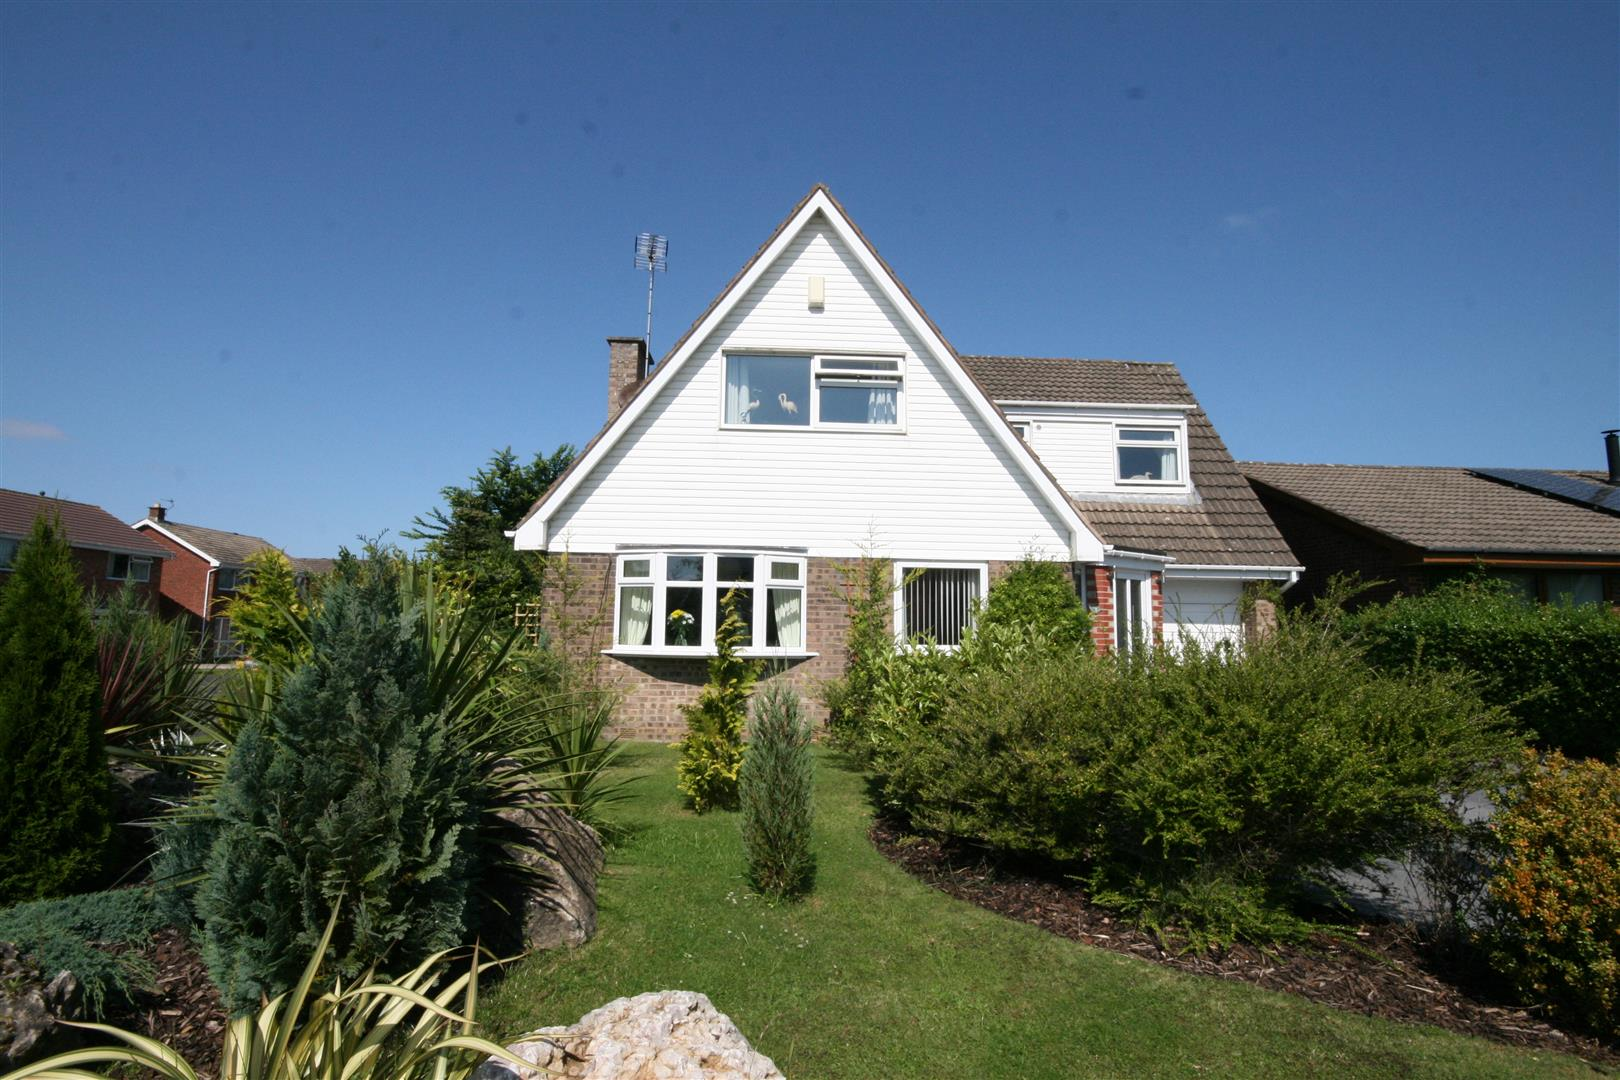 4 Bedrooms Property for sale in Elmswood Close, Lytham